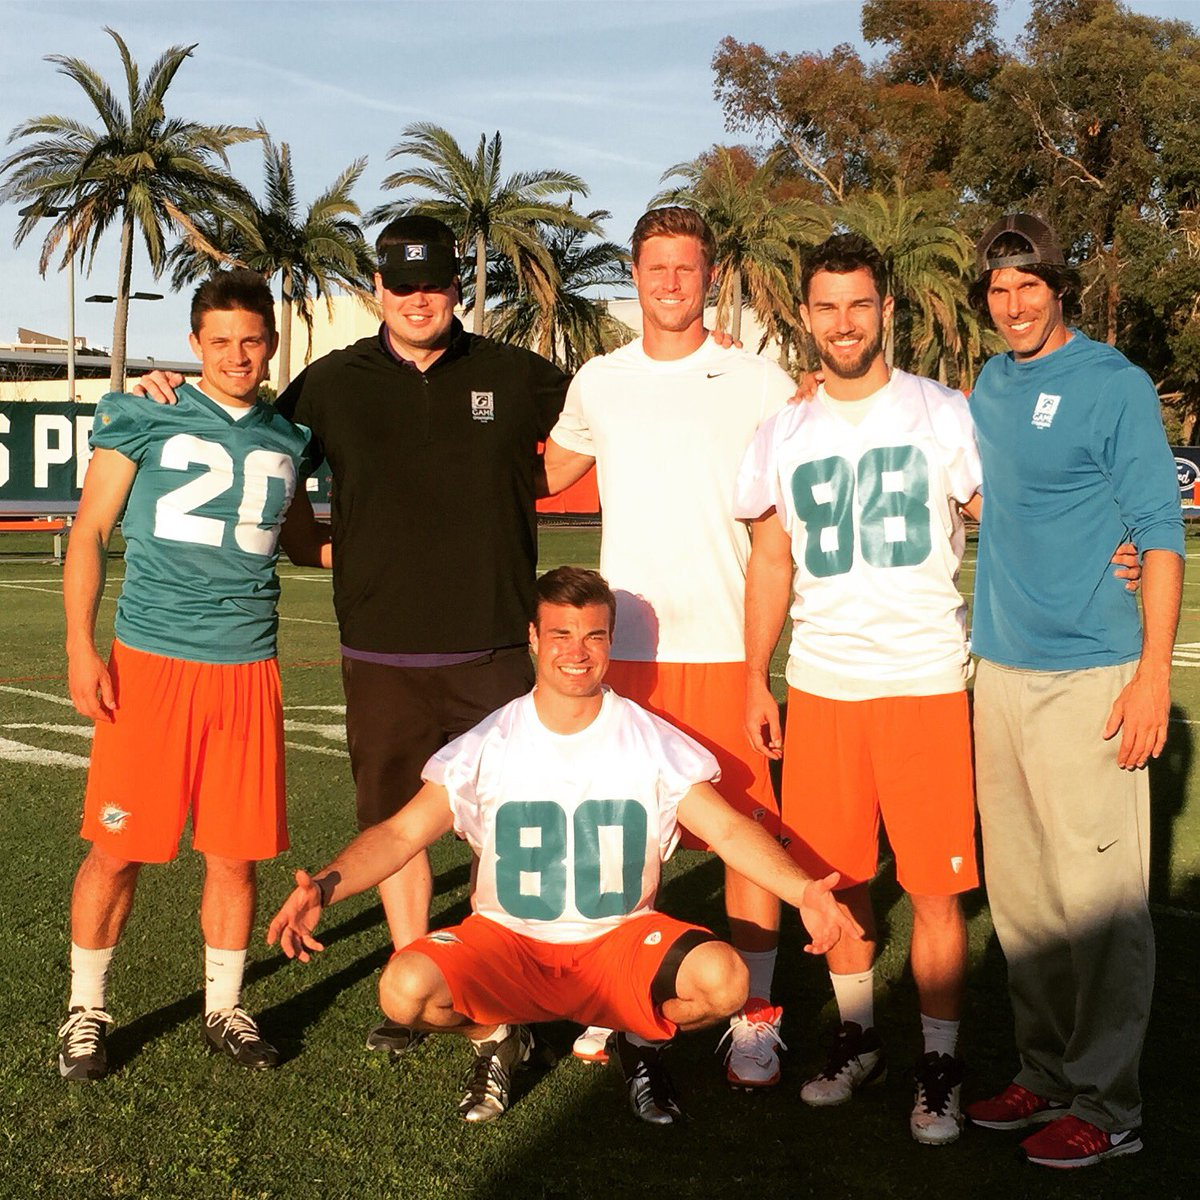 #tbt On the set of Ballers. #hbo #miami #dolphins #setlife🎥 #football https://t.co/O2ad4CpFj0